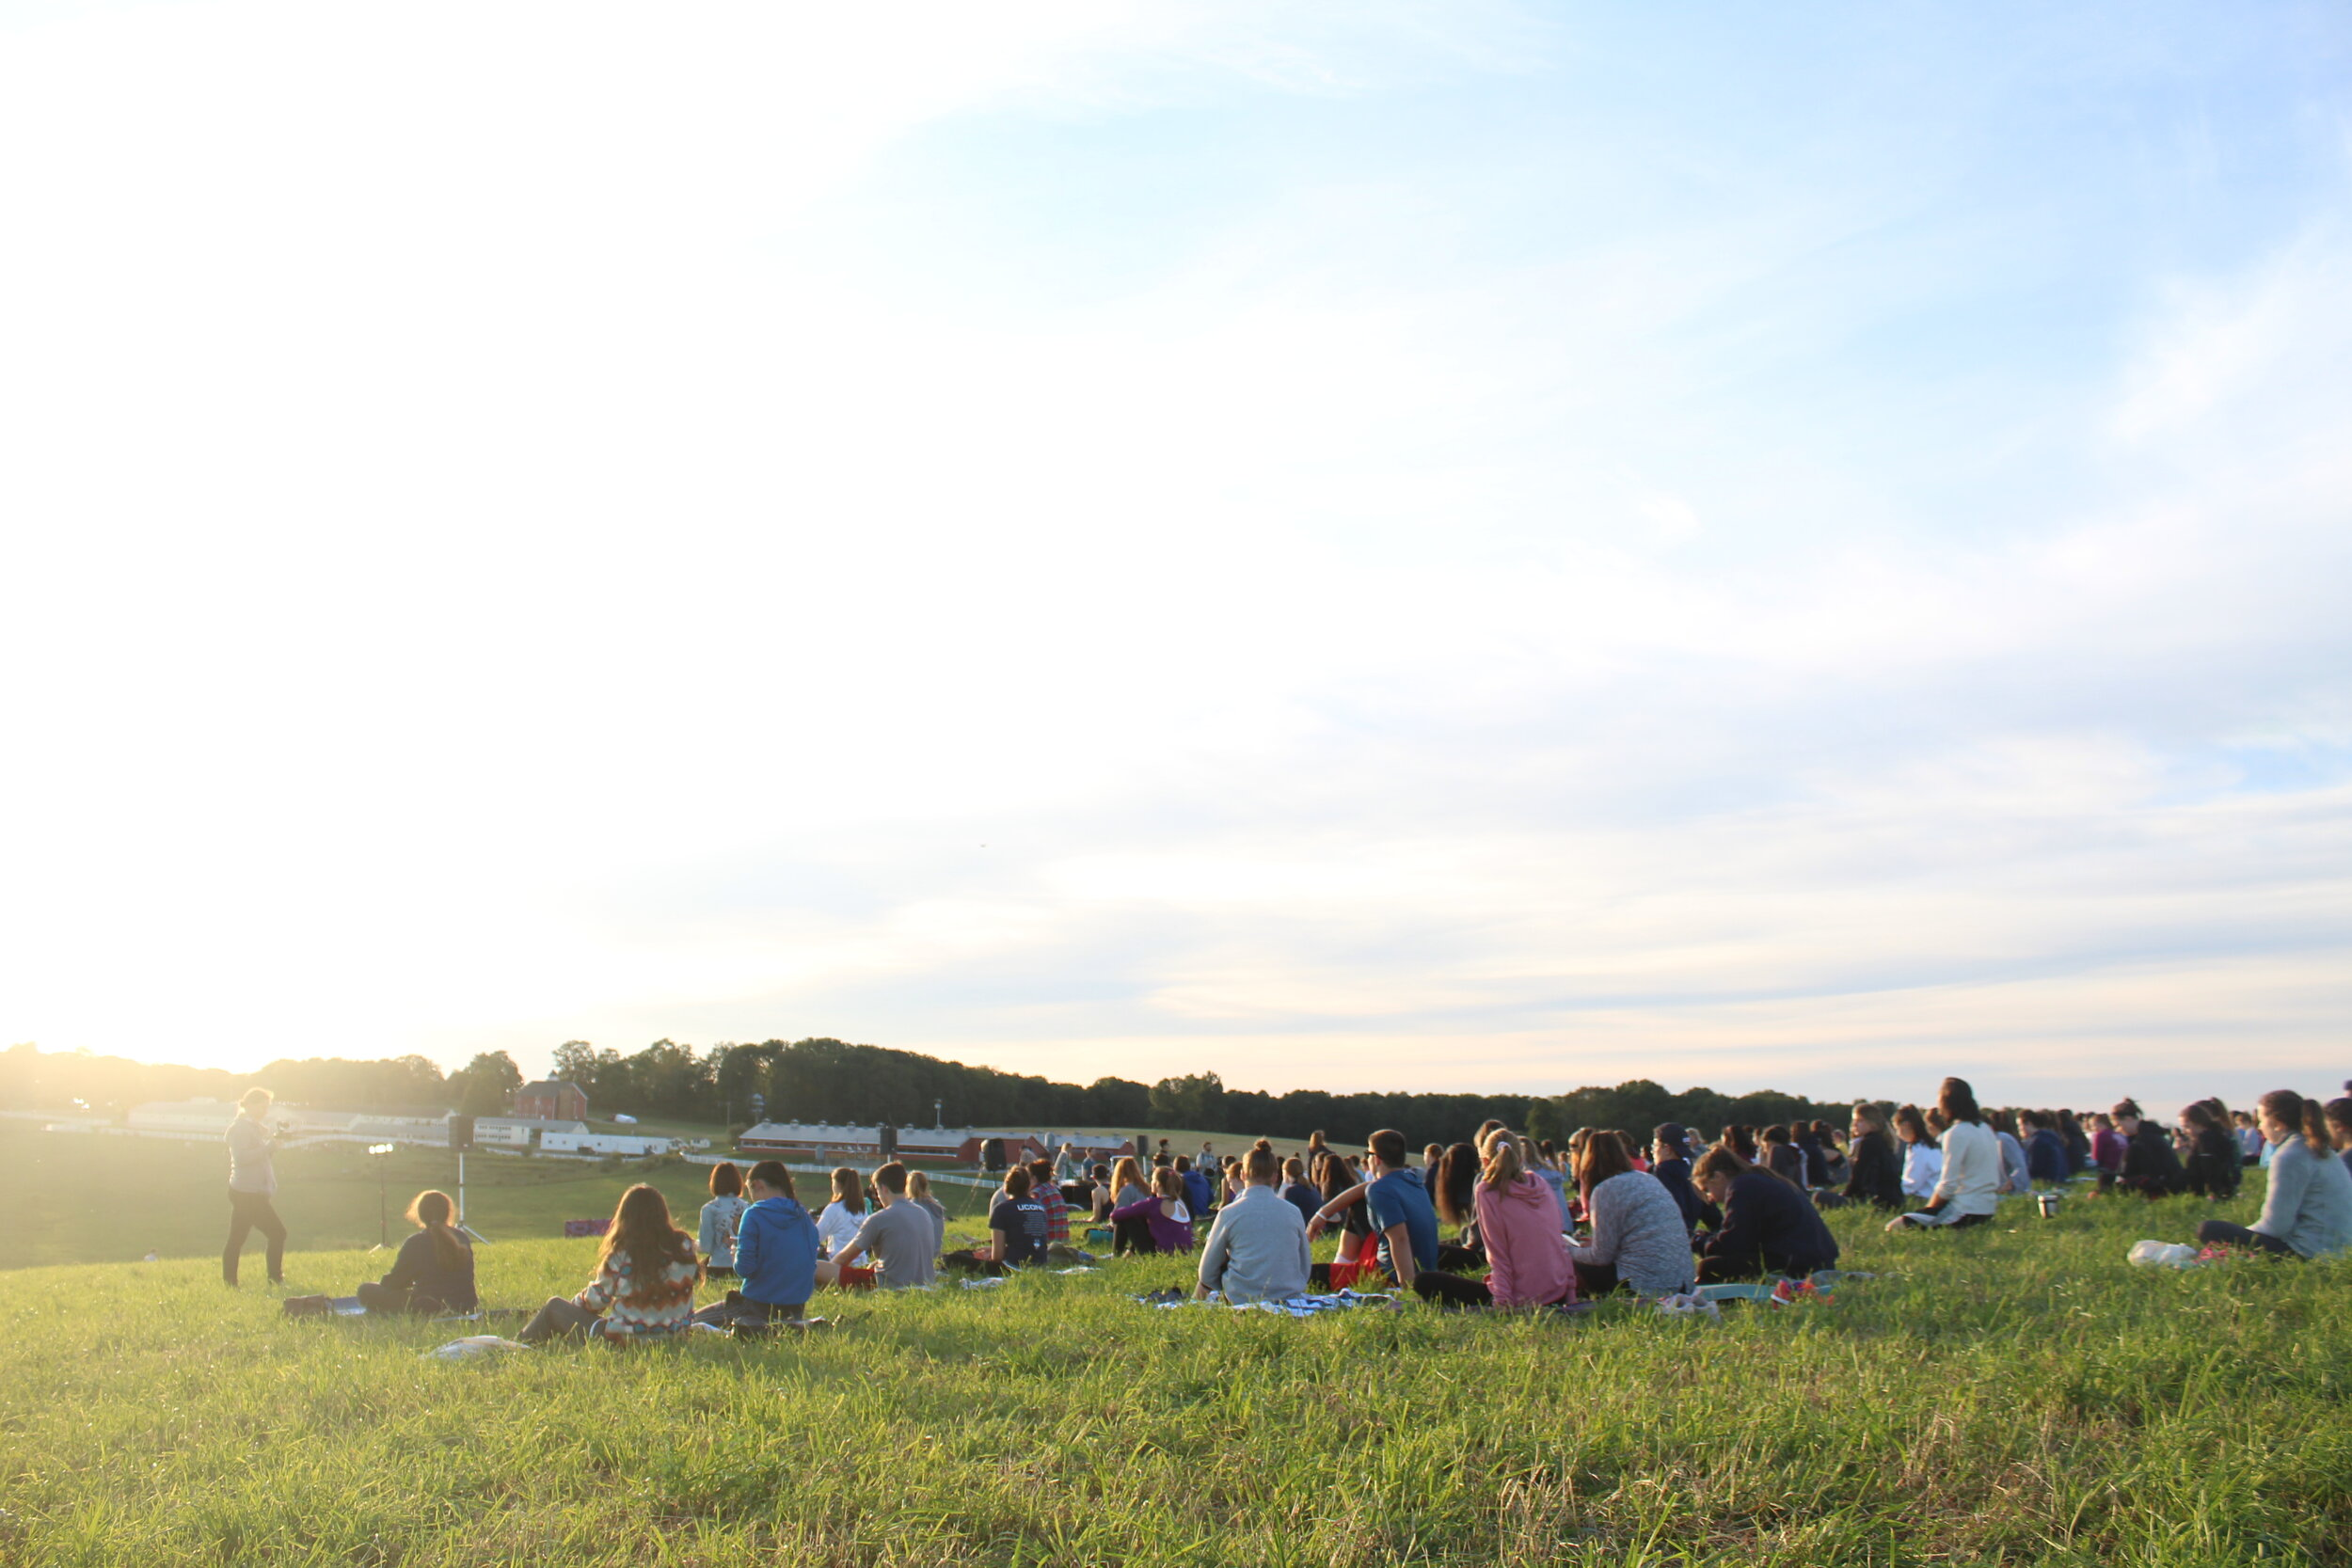 Students participate in Sunset Yoga at Horsebarn Hill on Friday, Sept. 1. The event was hosted by Counseling and Mental Health Services.  Photos by Kimberly Nguyen / The Daily Campus.